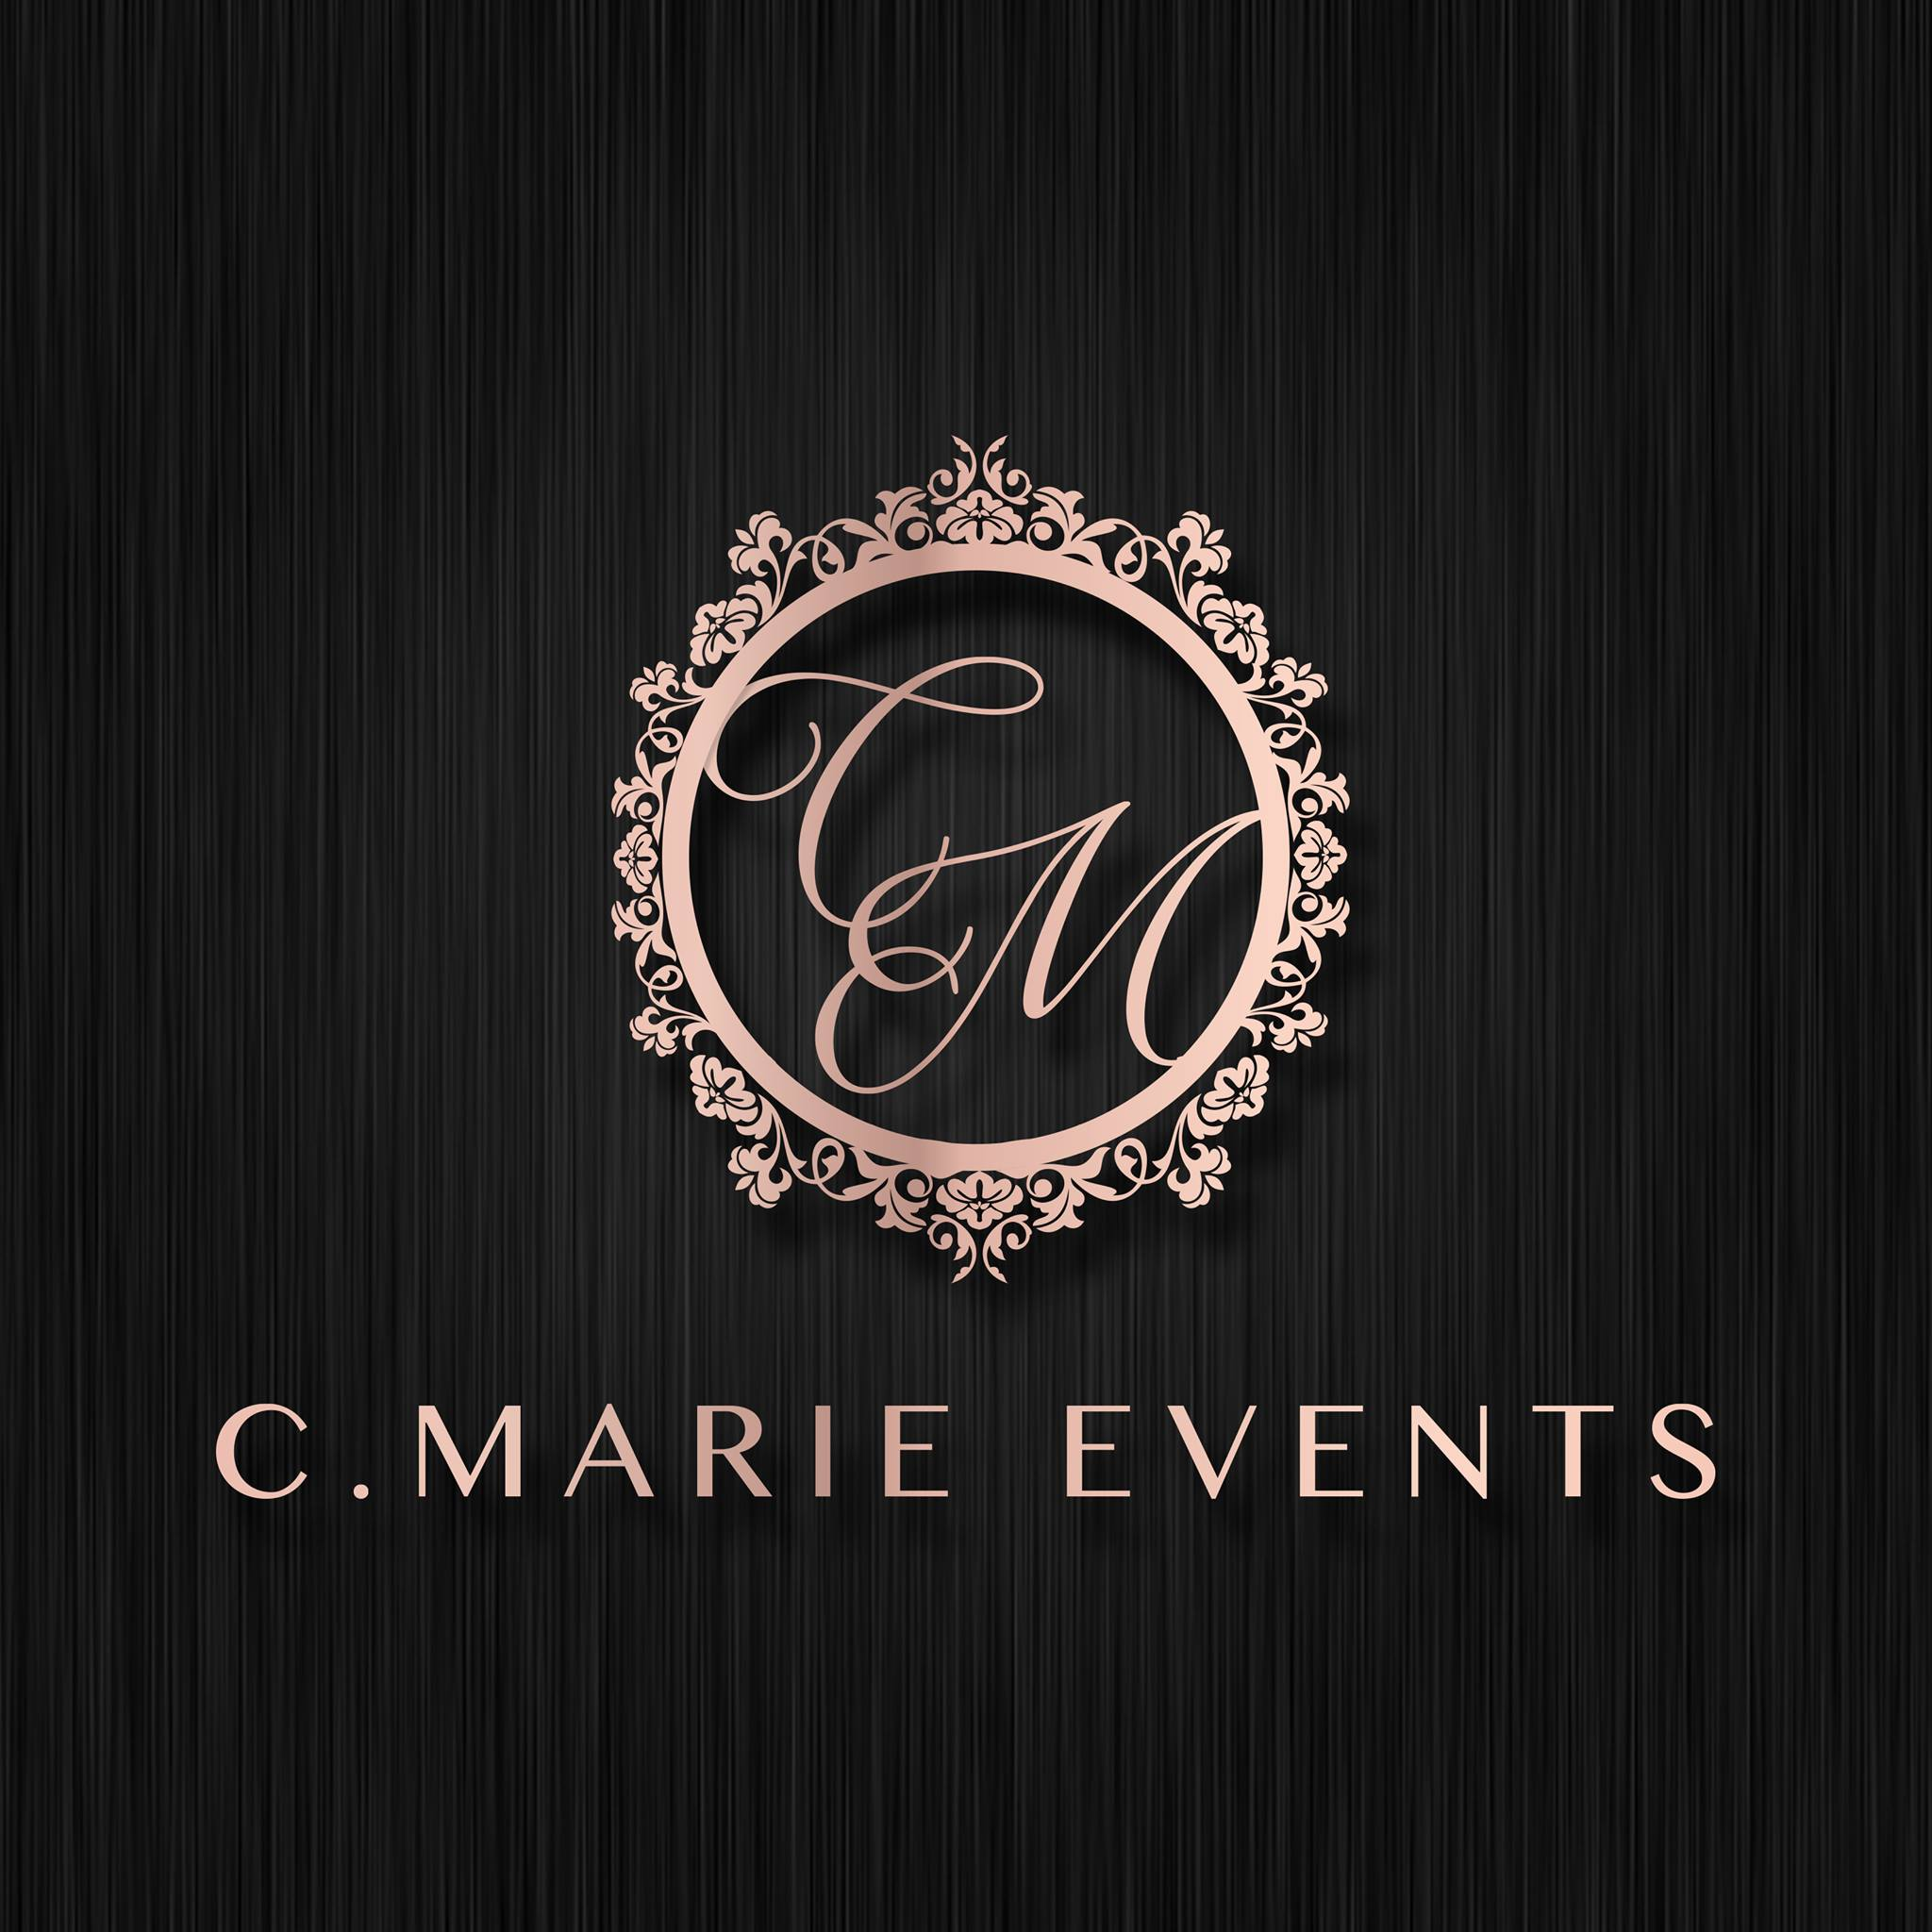 CMarieEvents_logoDesign.jpg